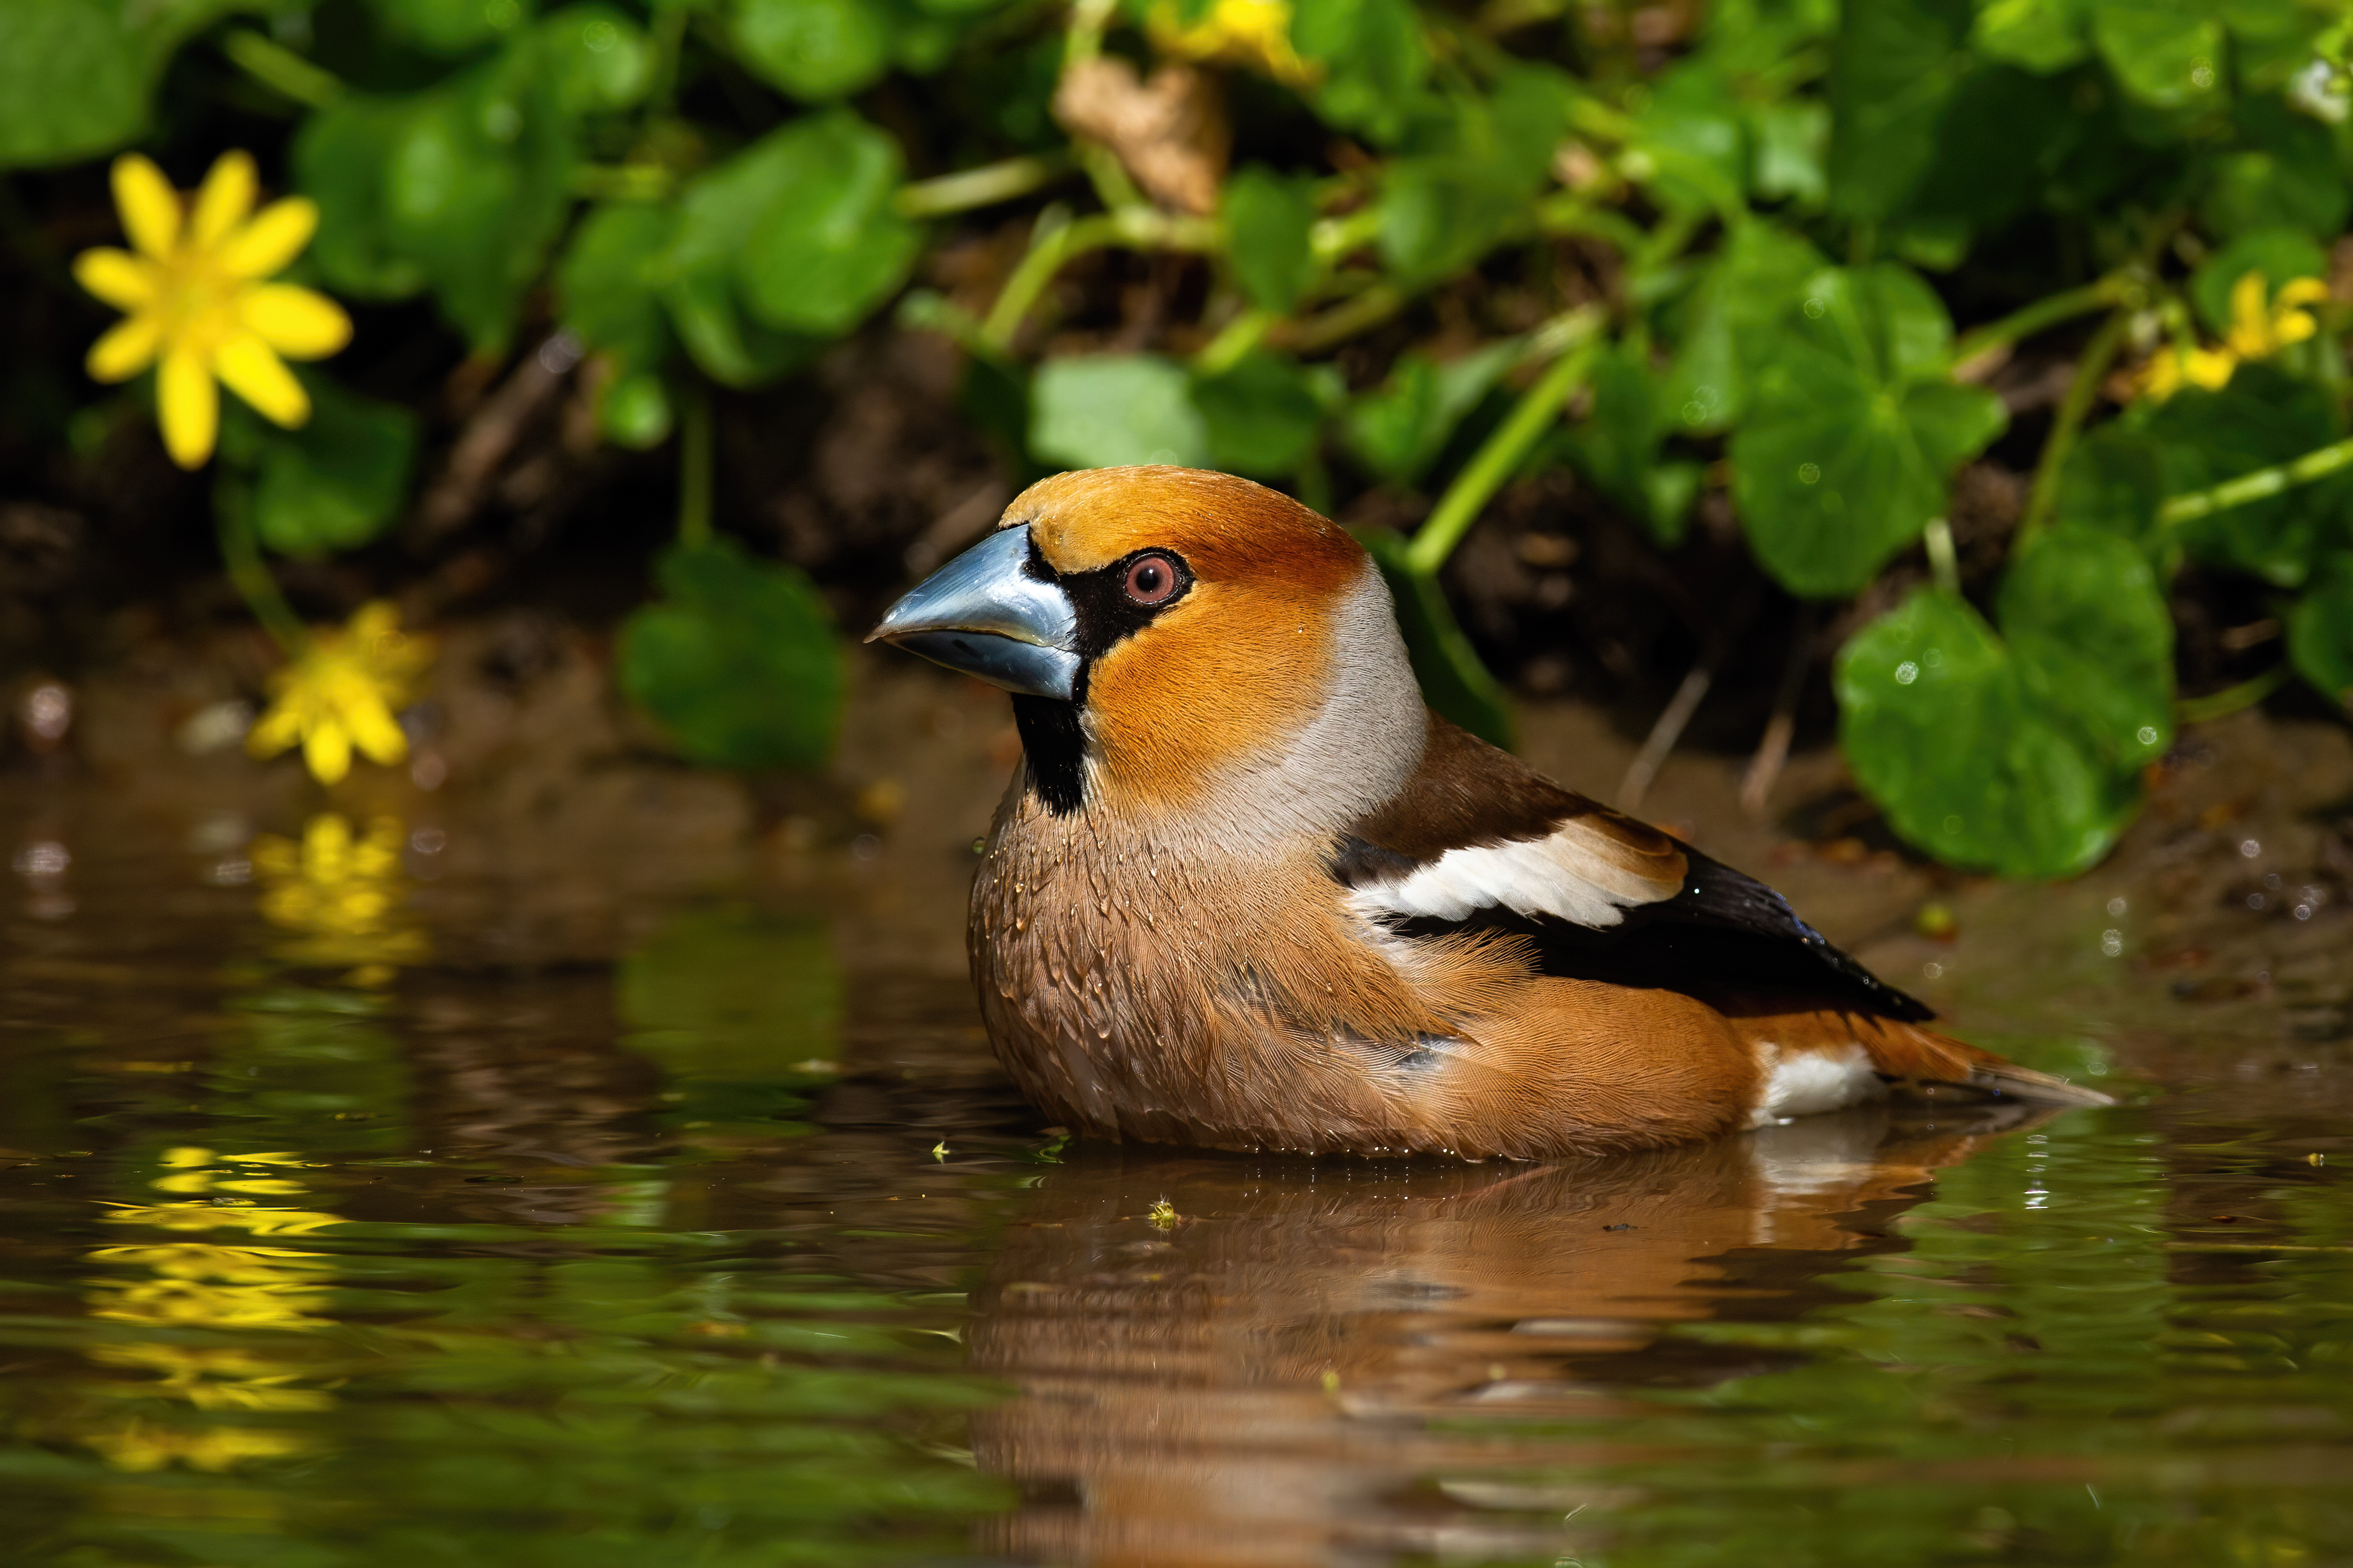 male-hawfinch-standing-in-lake-and-cleaning-feathe-7ZHQBW8